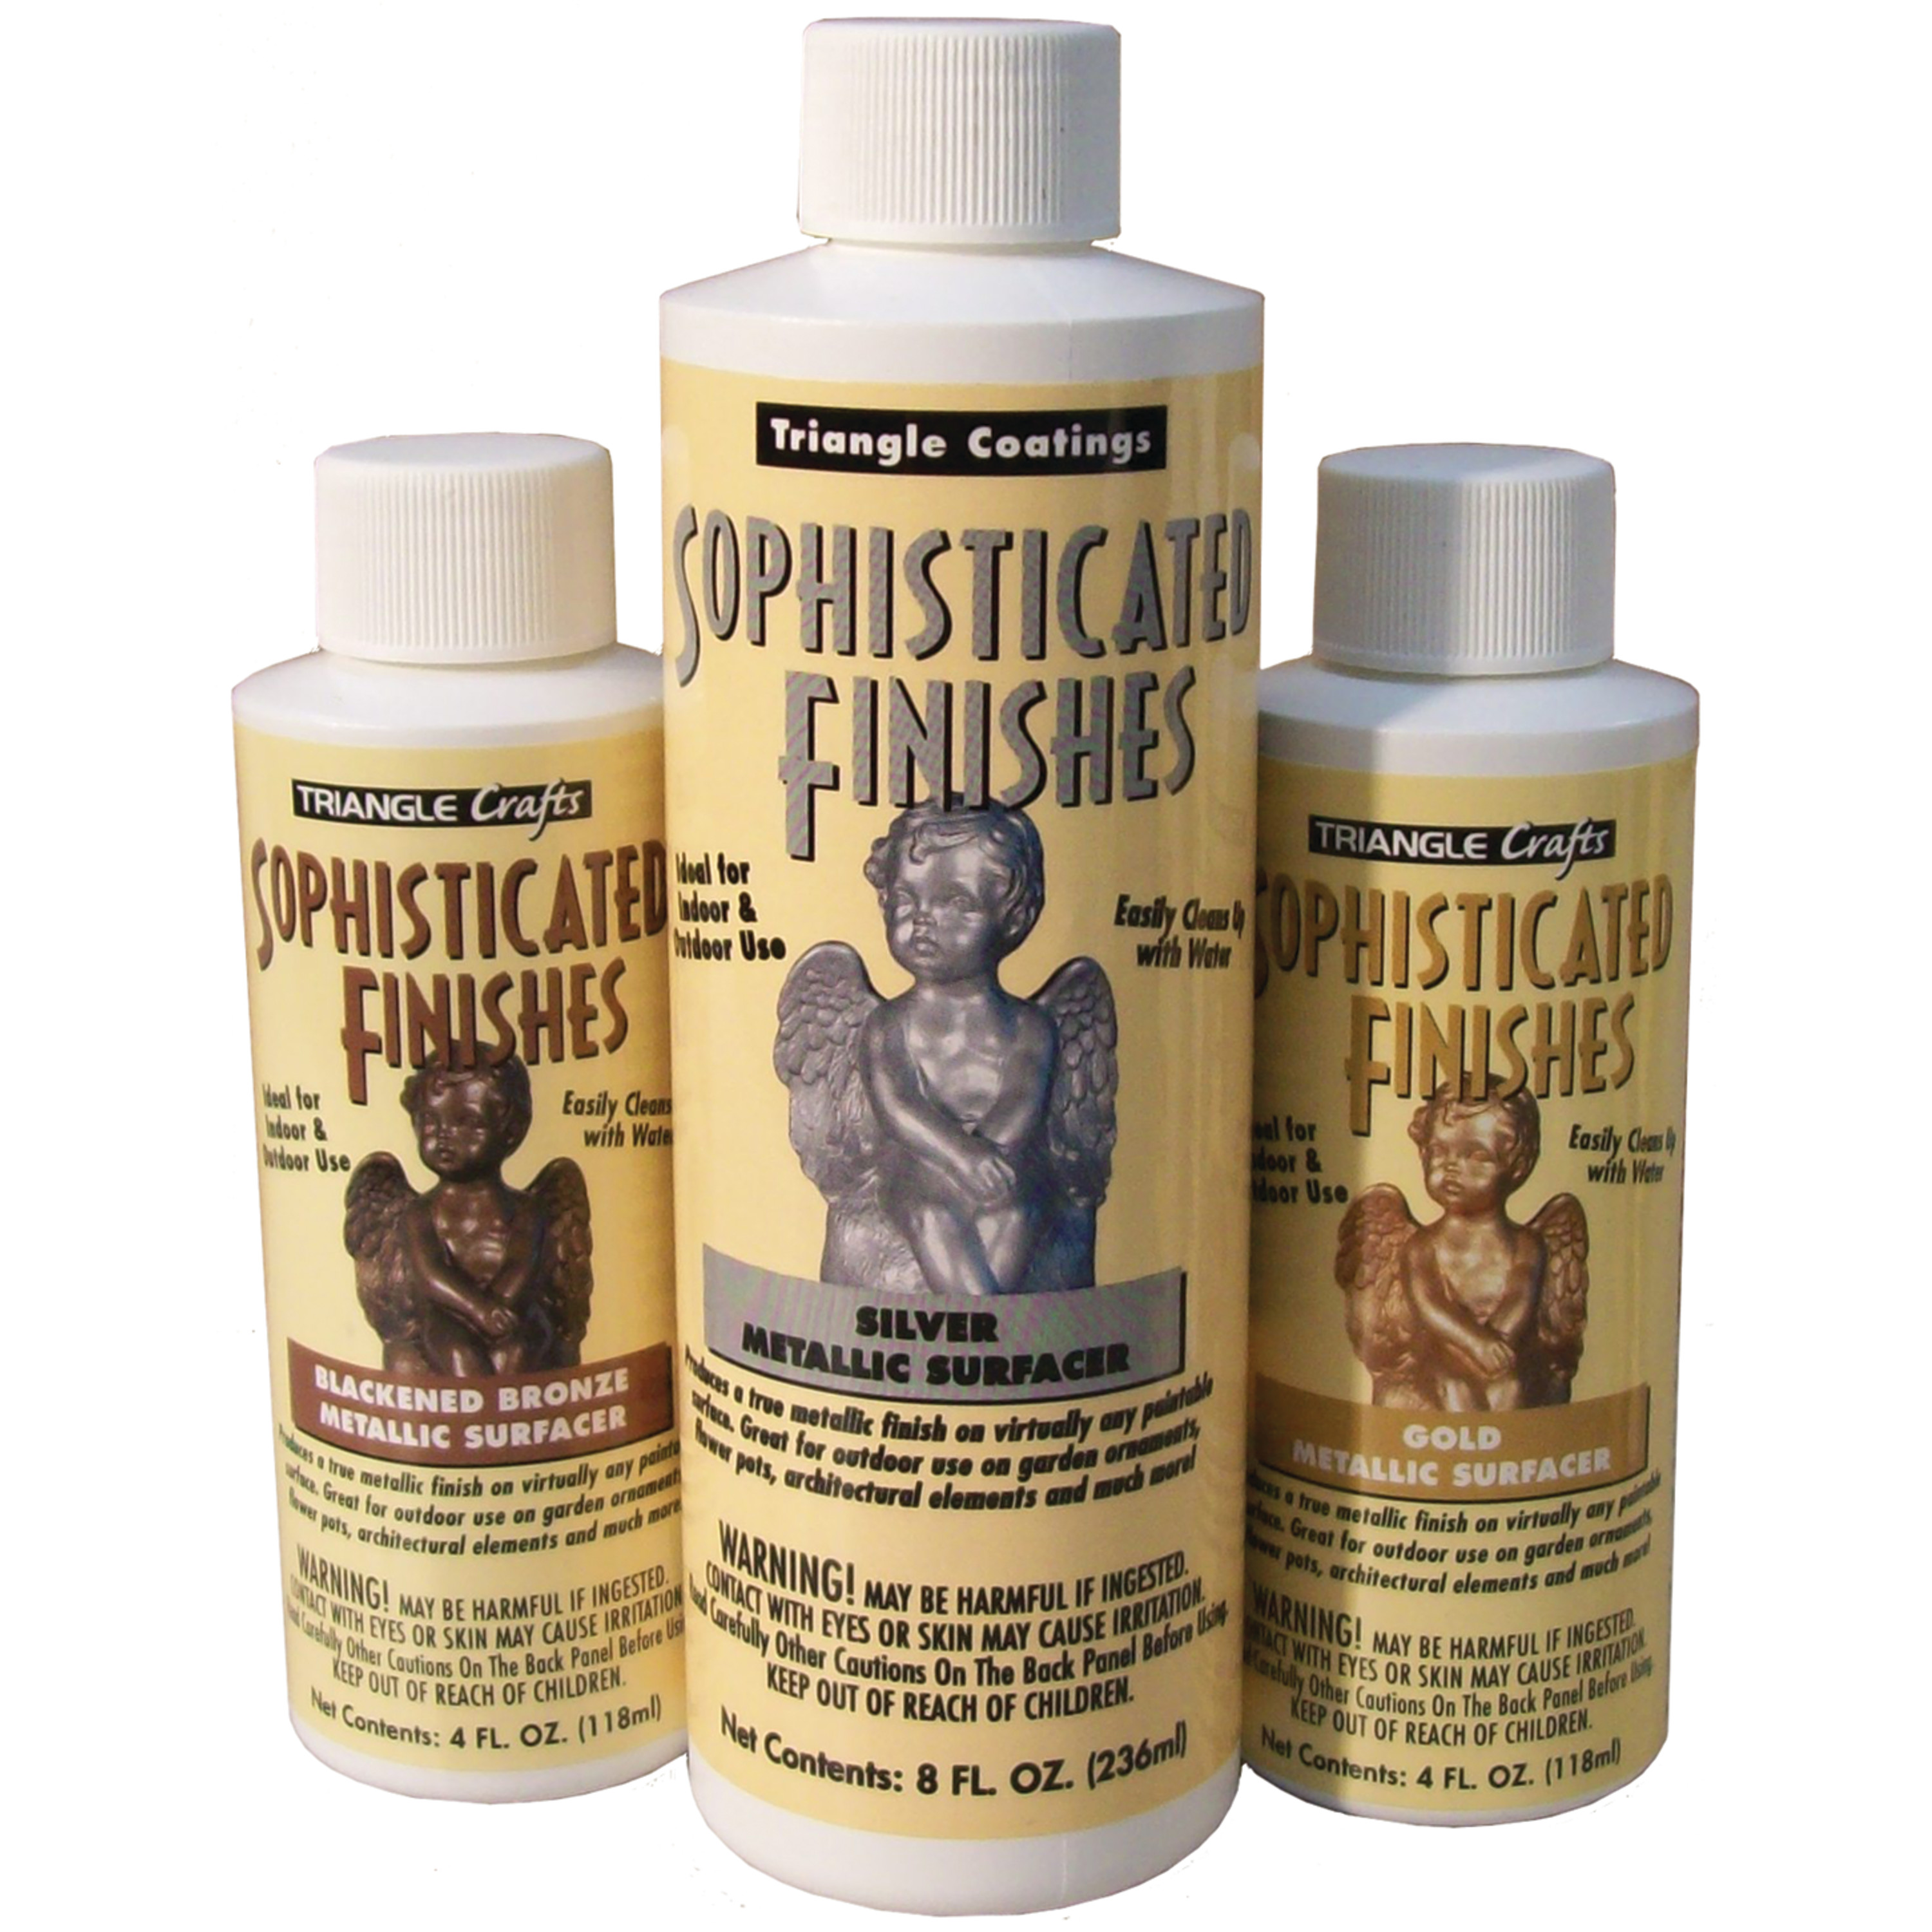 Sophisticated Finishes Instant Antiquity Metallic Surfacing Solution, 4 oz., Blackened Bronze